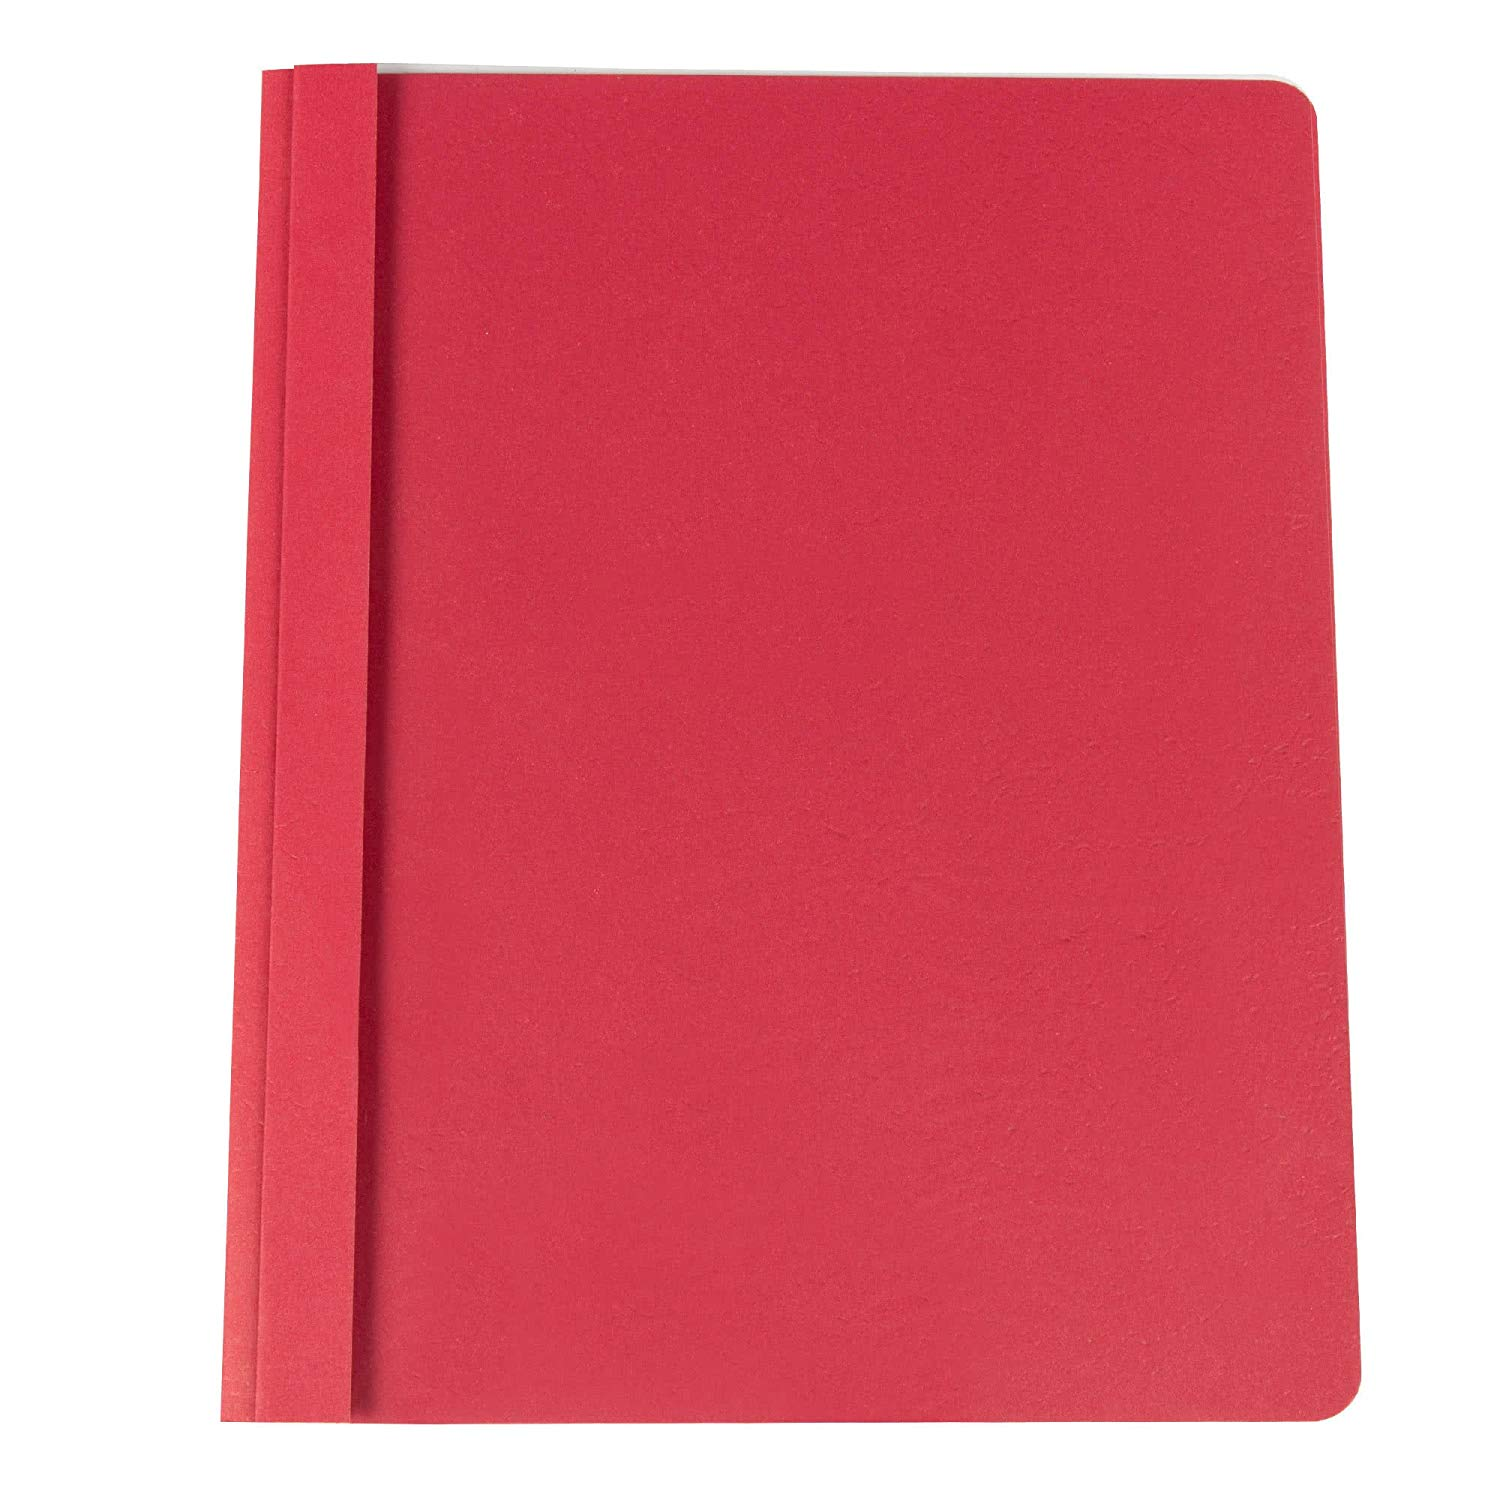 "TableTop King Office UNV57123 11"" x 8 1/2"" Red Leatherette Embossed Paper Report Cover with Clear Cover and Prong Fasteners, Letter - 25/Box"